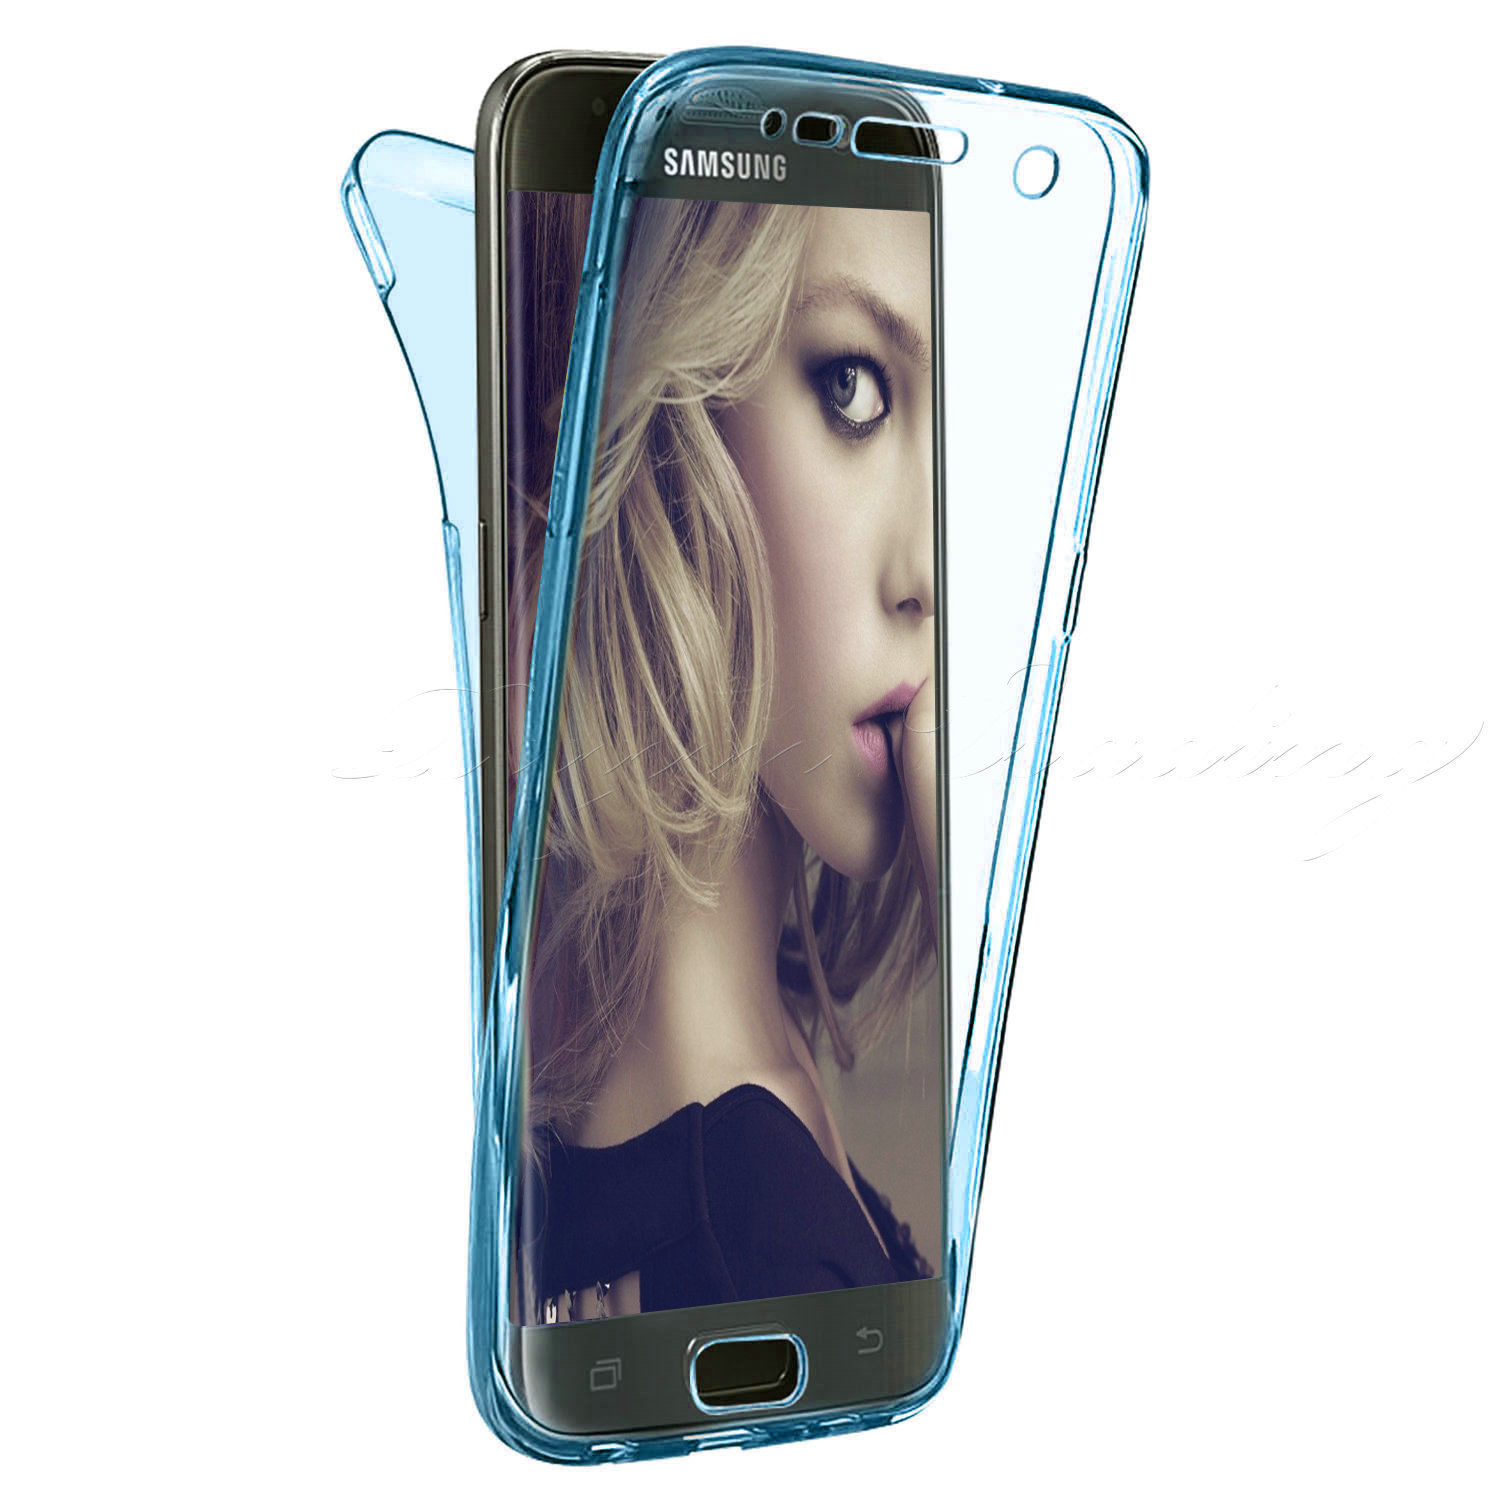 case for samsung galaxy s3 s4 s5 s6 s6 edge s7 edge j3 j5 j7 frontMost Protective Galaxy S6 Edge Case Samsung Galaxy S6 Edge Cases Uk Protective Cases For Samsung Galaxy S6 Edge Cases For Samsung Fashion #19